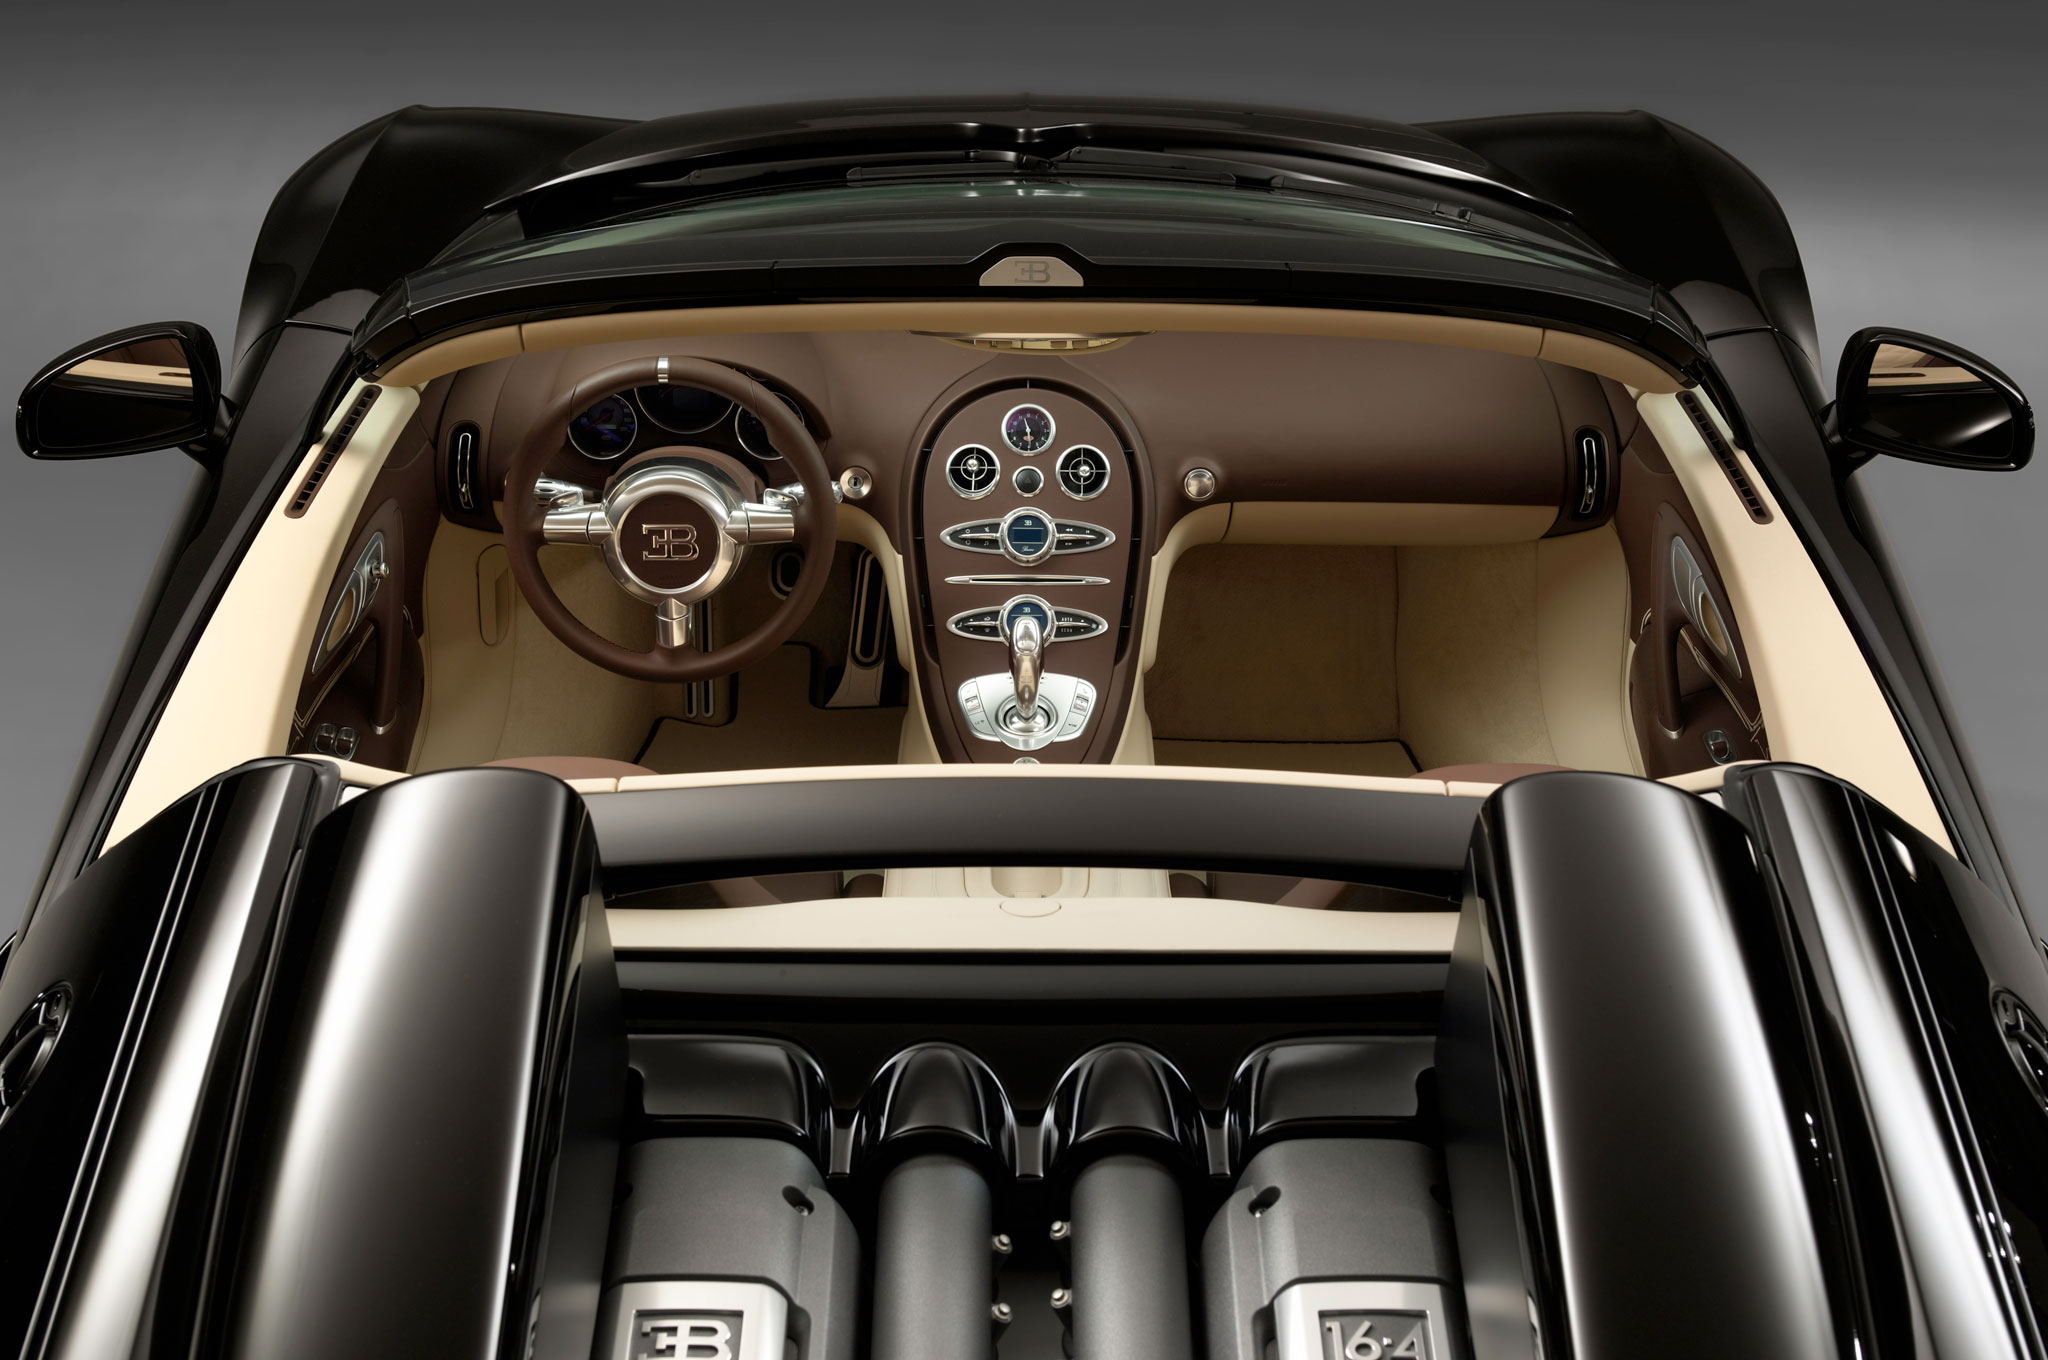 2013-Bugatti-Veyron-Jean-Bugatti-Legend-Edition-interior Terrific Bugatti Veyron Grand Sport Vitesse Gold Cars Trend